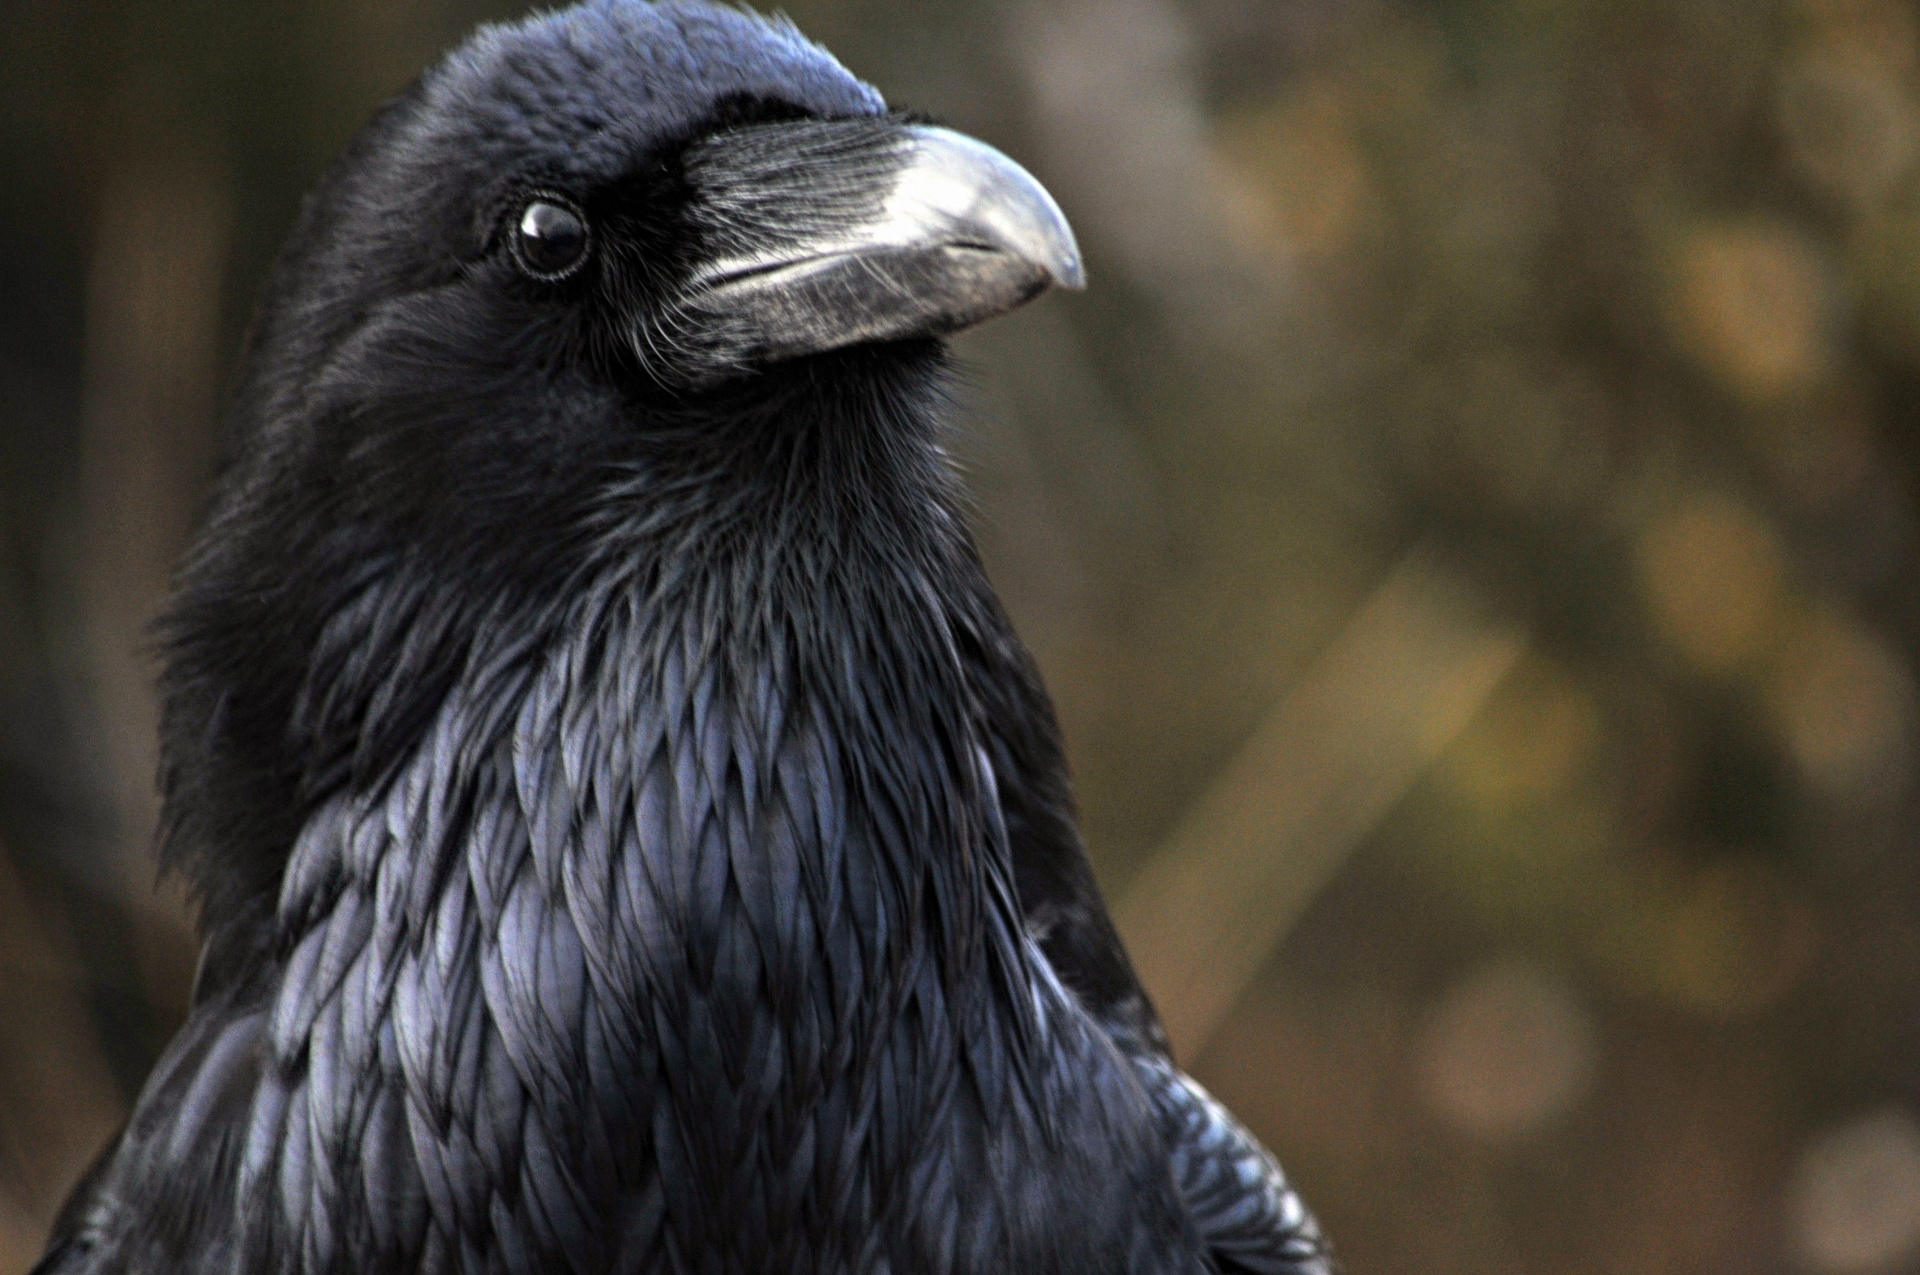 Quartz Who The Remember Faces Wronged Can Of Humans Ravens Them — K1JTFcl3